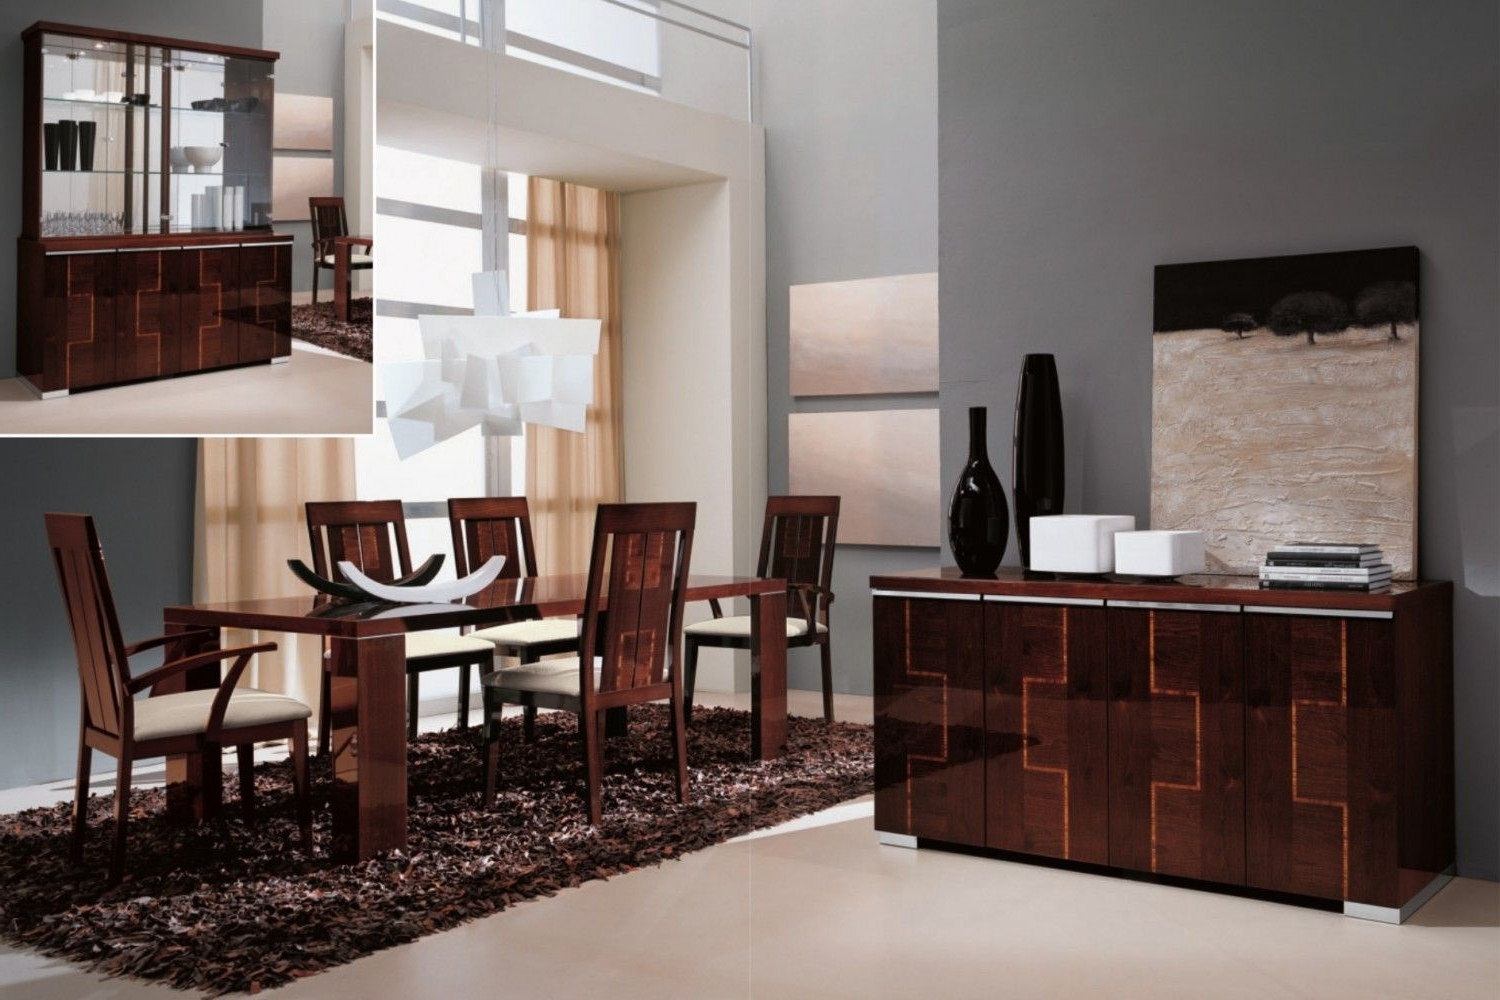 Pisa Dining Tables For Fashionable Pisa Dining Room Collectionalf+Da Fre (View 5 of 25)